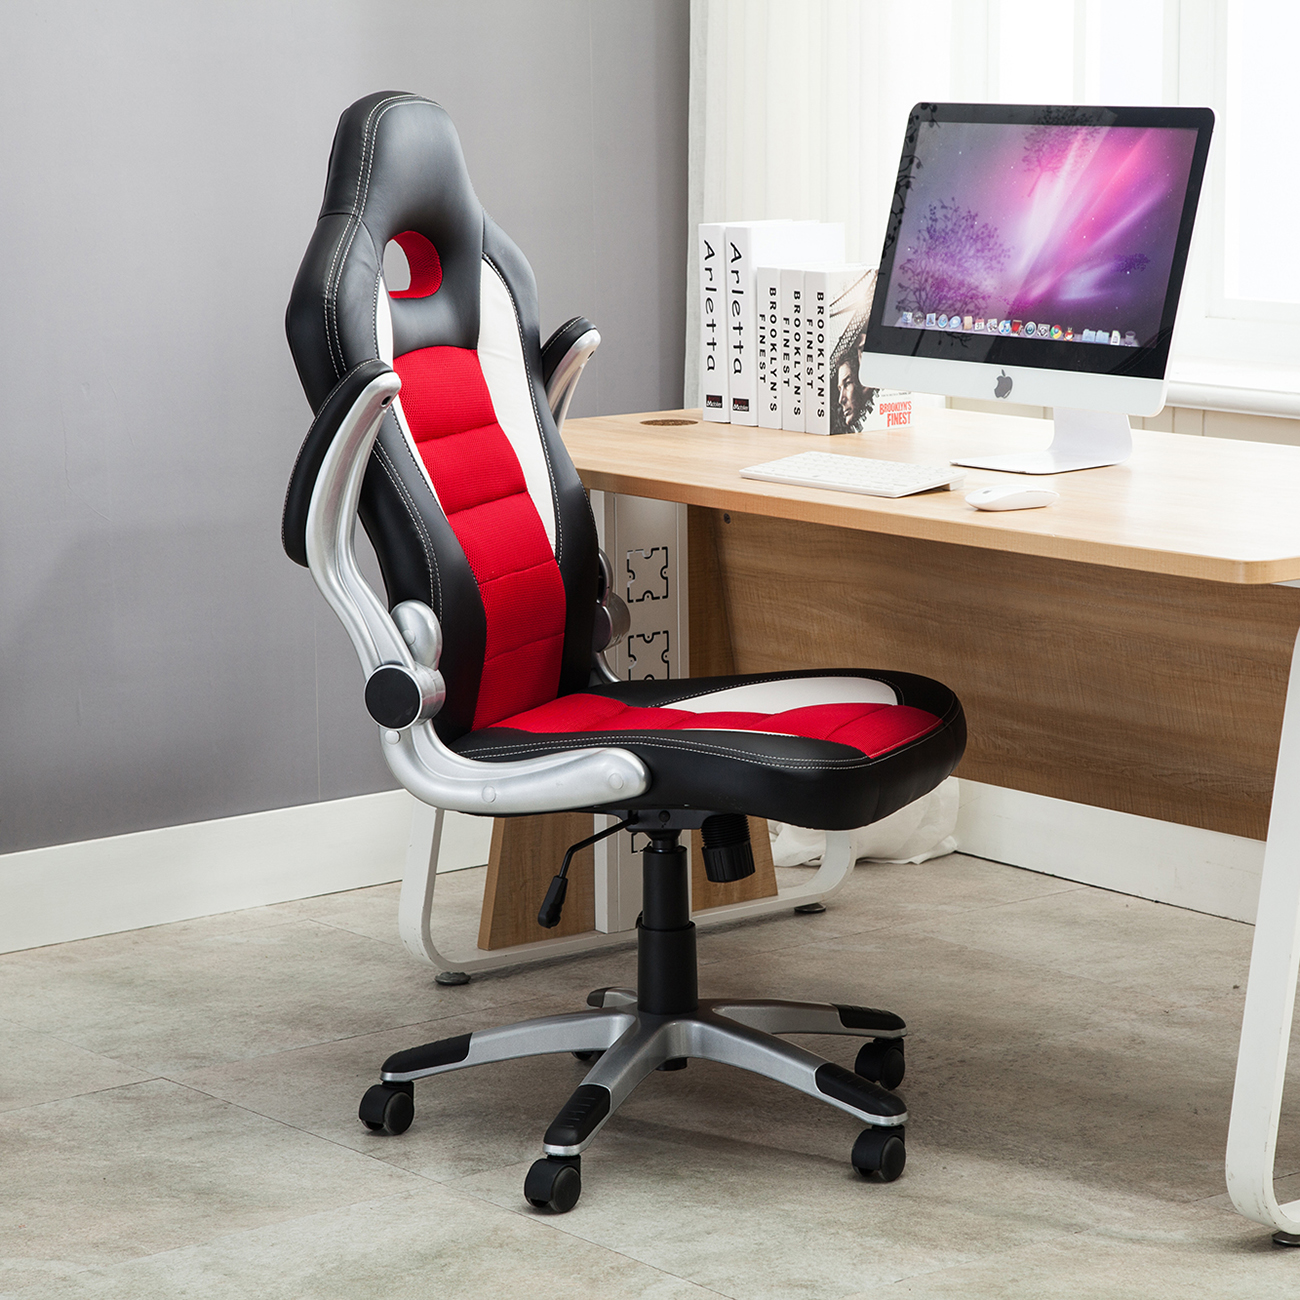 Office Chair Styles Office Chair Ergonomic Computer Pu Leather Desk Seat Race